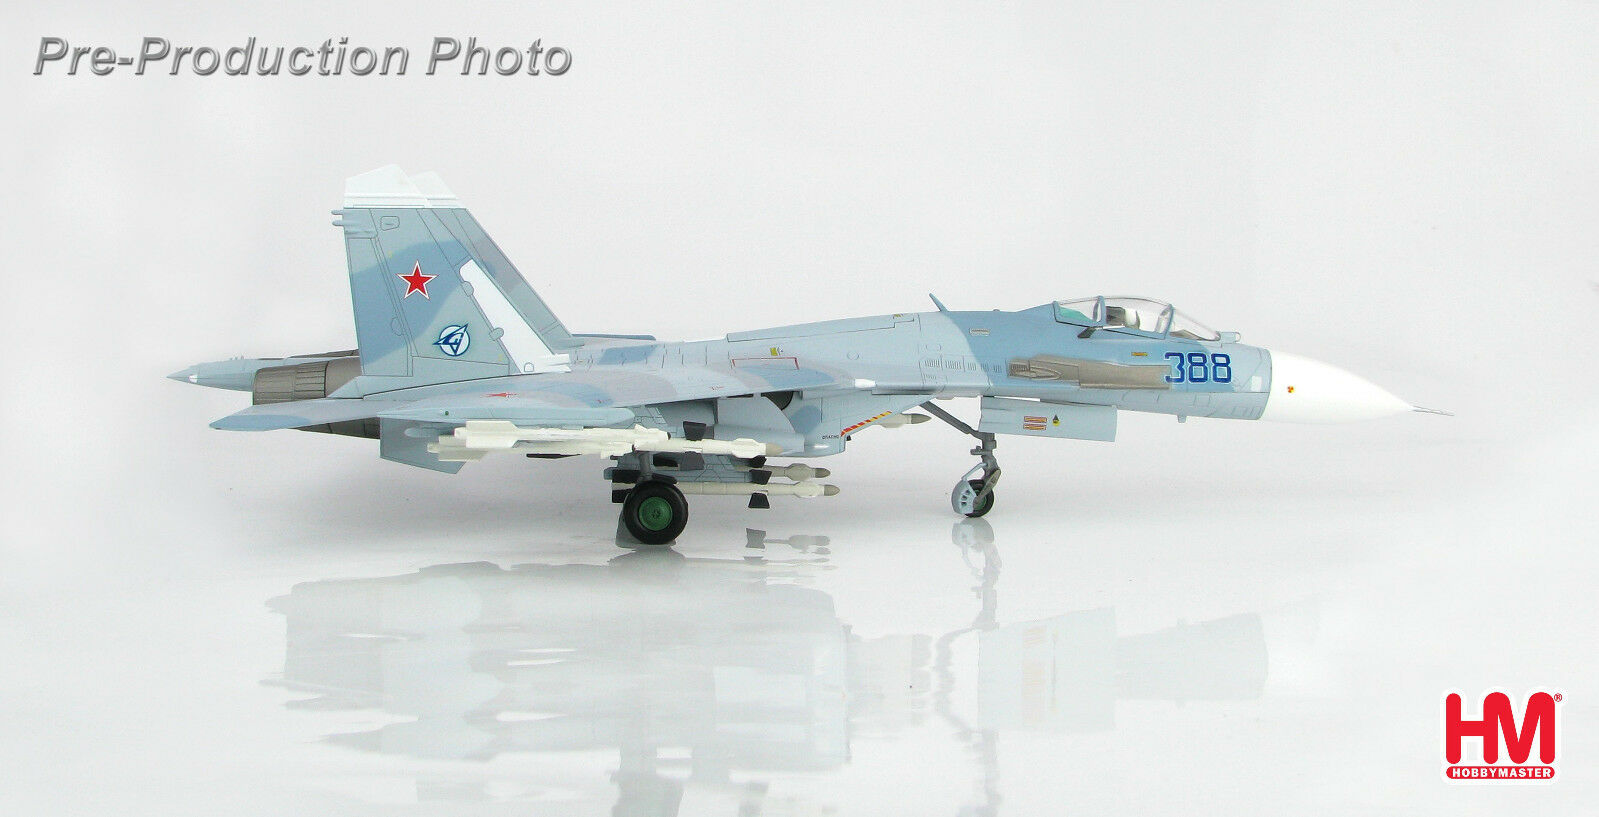 Hobby Master HA6003 1/72 Su-27 Flanker Flanker B B388, Paris le Bourget